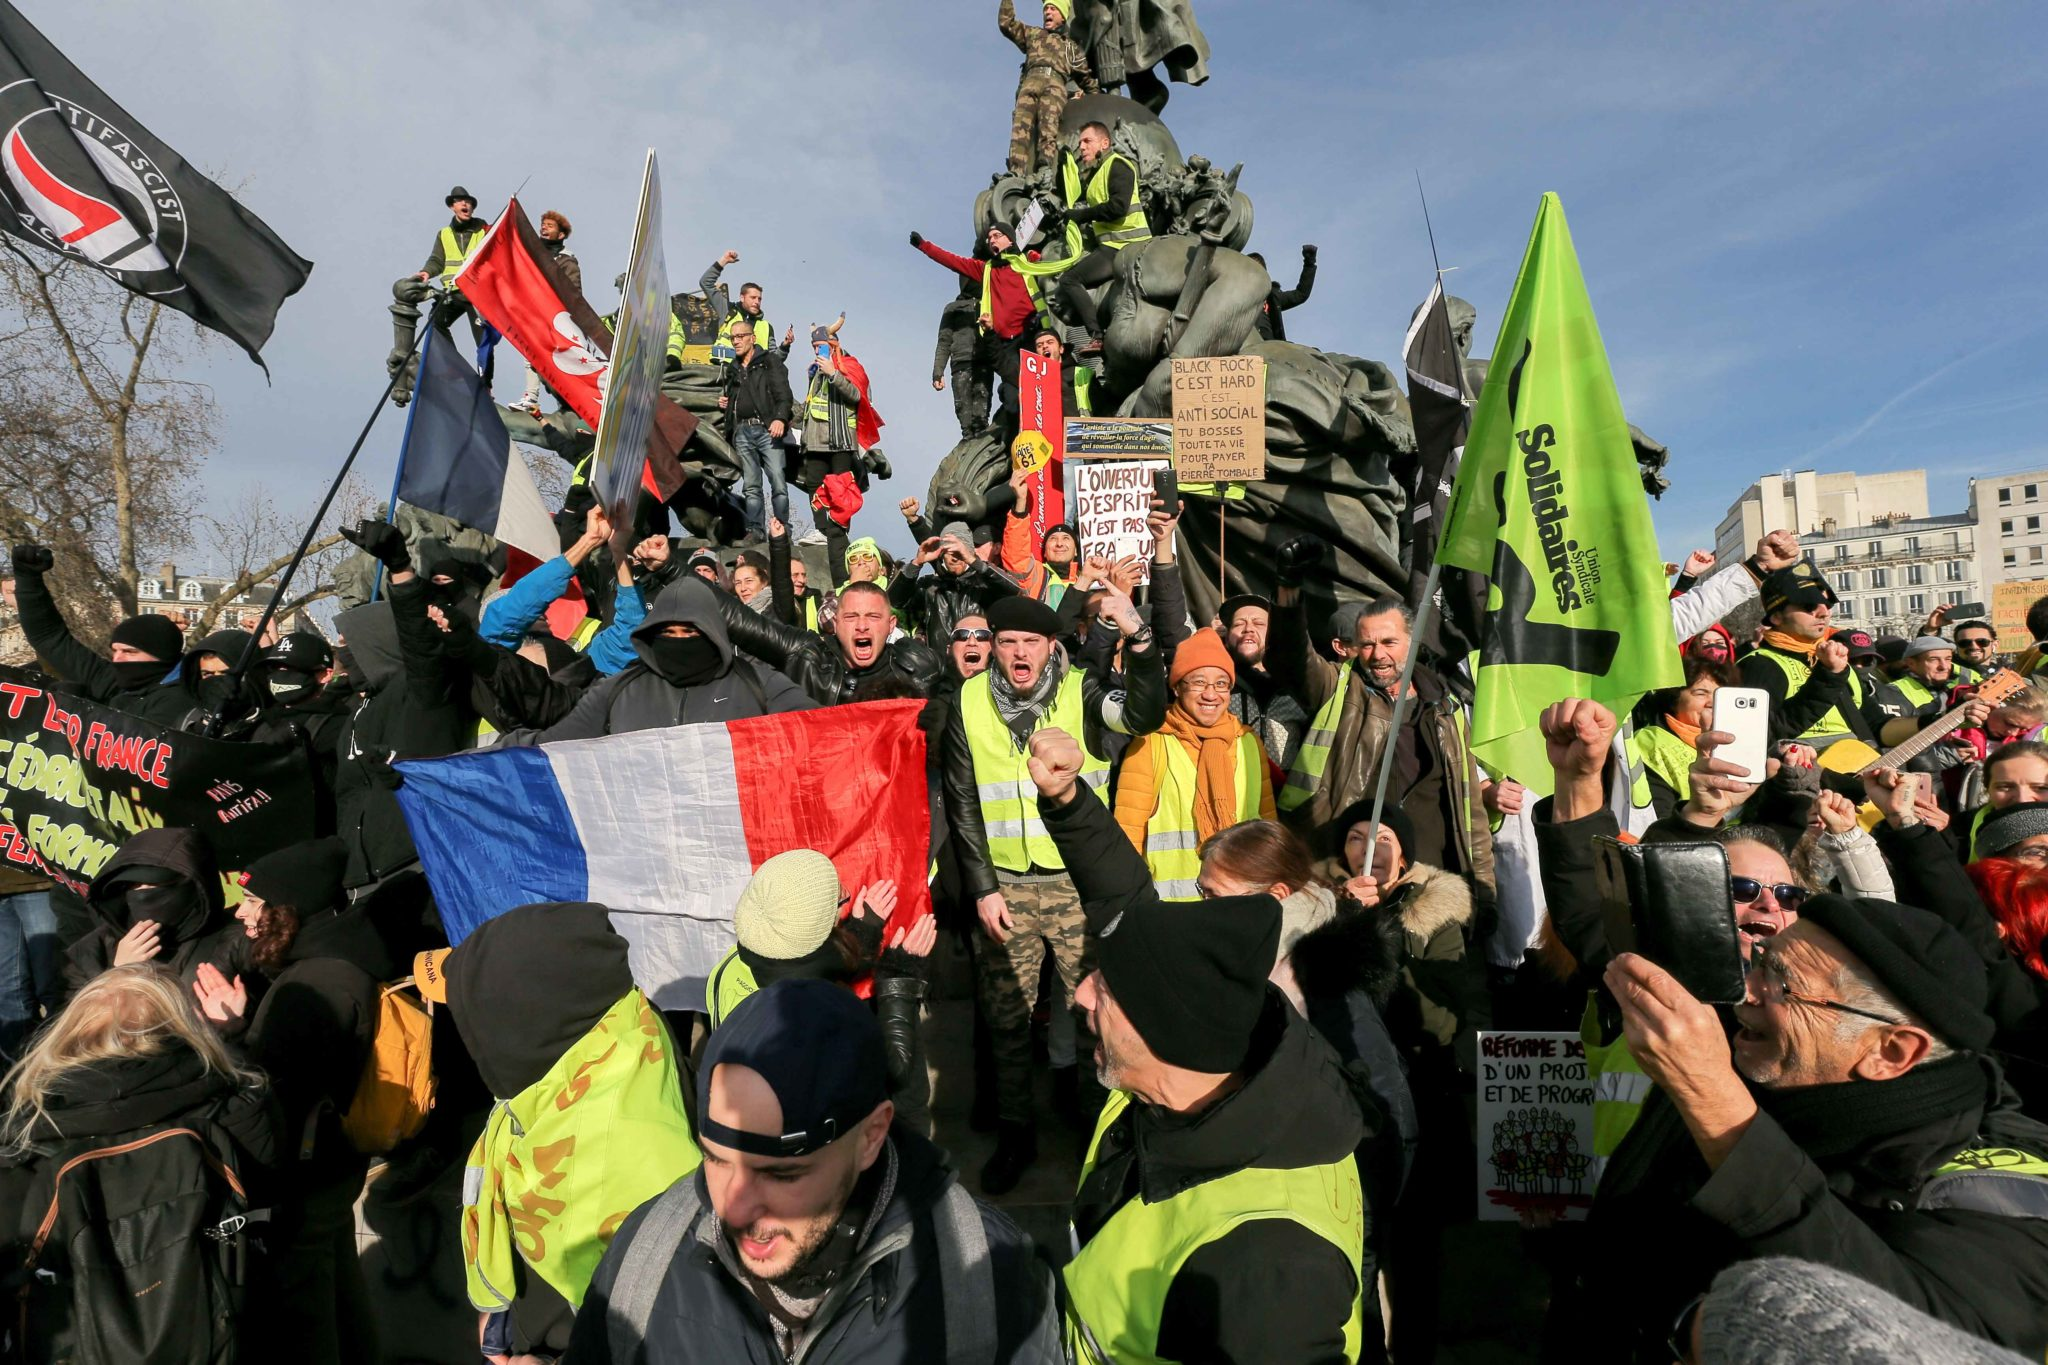 Yellow vests climb the statue of the Nation Square (Place de la Nation) during a demonstration in Paris, on January 11, 2020, as part of a nationwide multi-sector strike against the French government's pensions overhaul. The country has been hit by 37 days